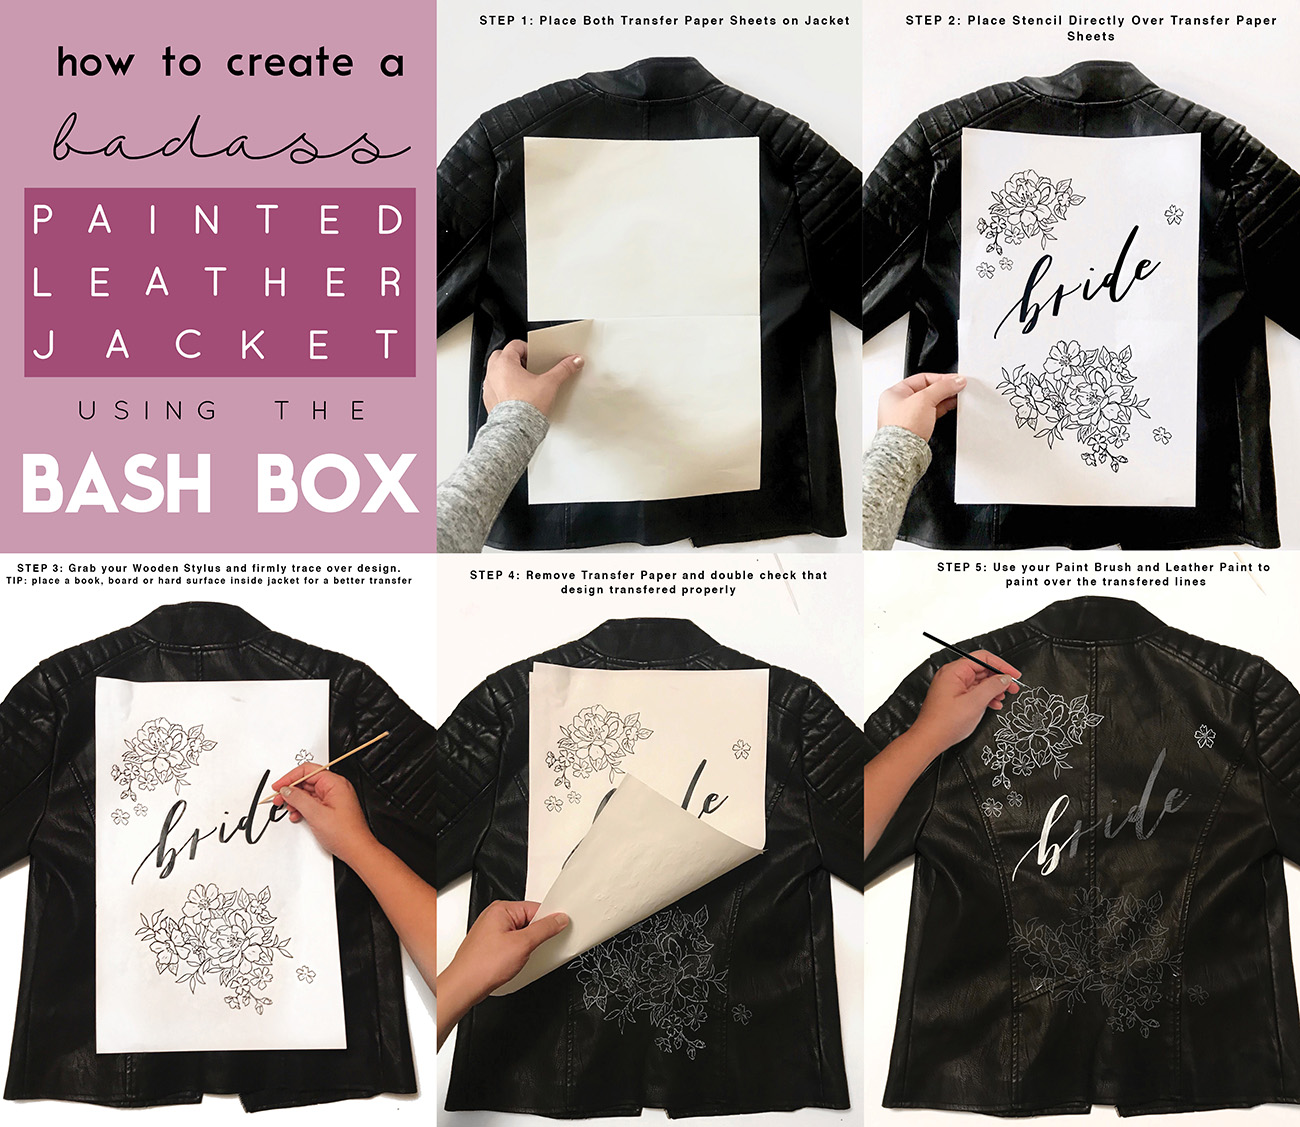 How to Create your Own custom Leather Jacket Step by Step